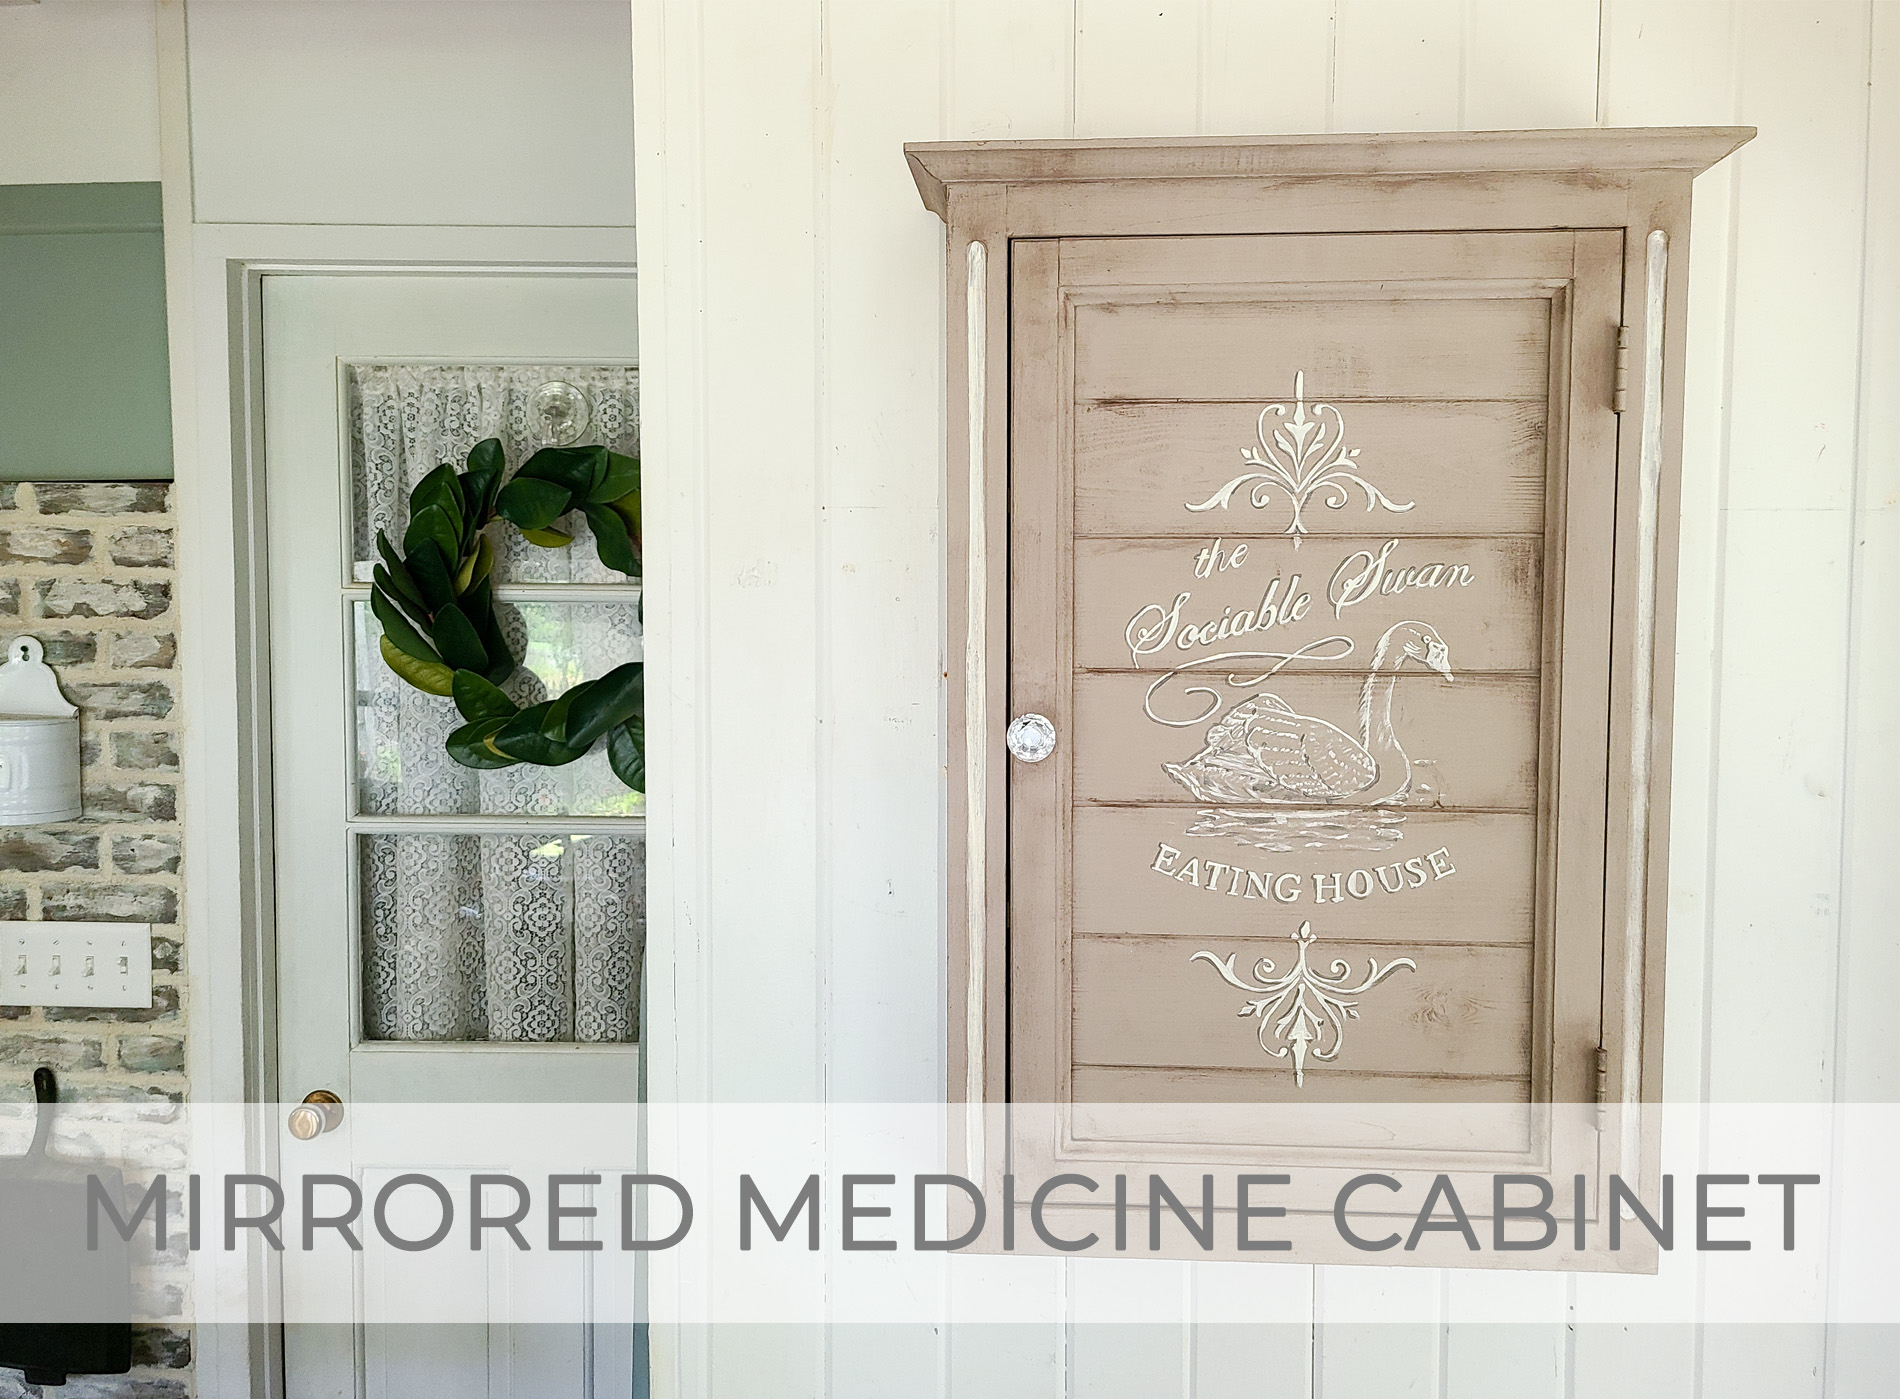 Vintage Mirrored Medicine Cabinet turned French Farmhouse Wall Cabinet by Larissa of Prodigal Pieces | prodigalpieces.com